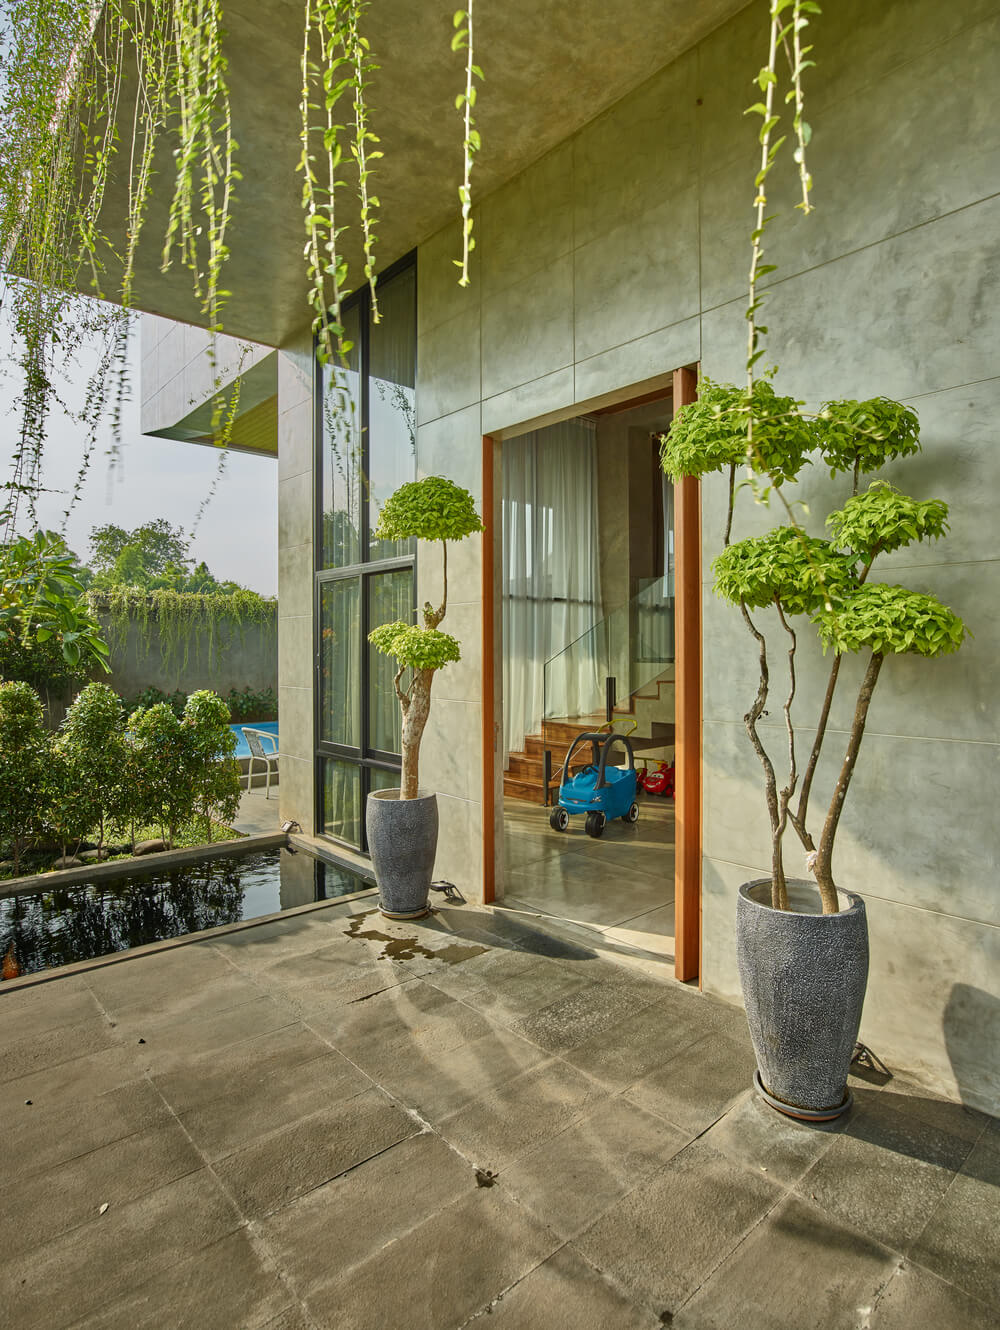 This is the main entrance of the house with a couple of potted plants flanking the main door and small fish pond on the side.